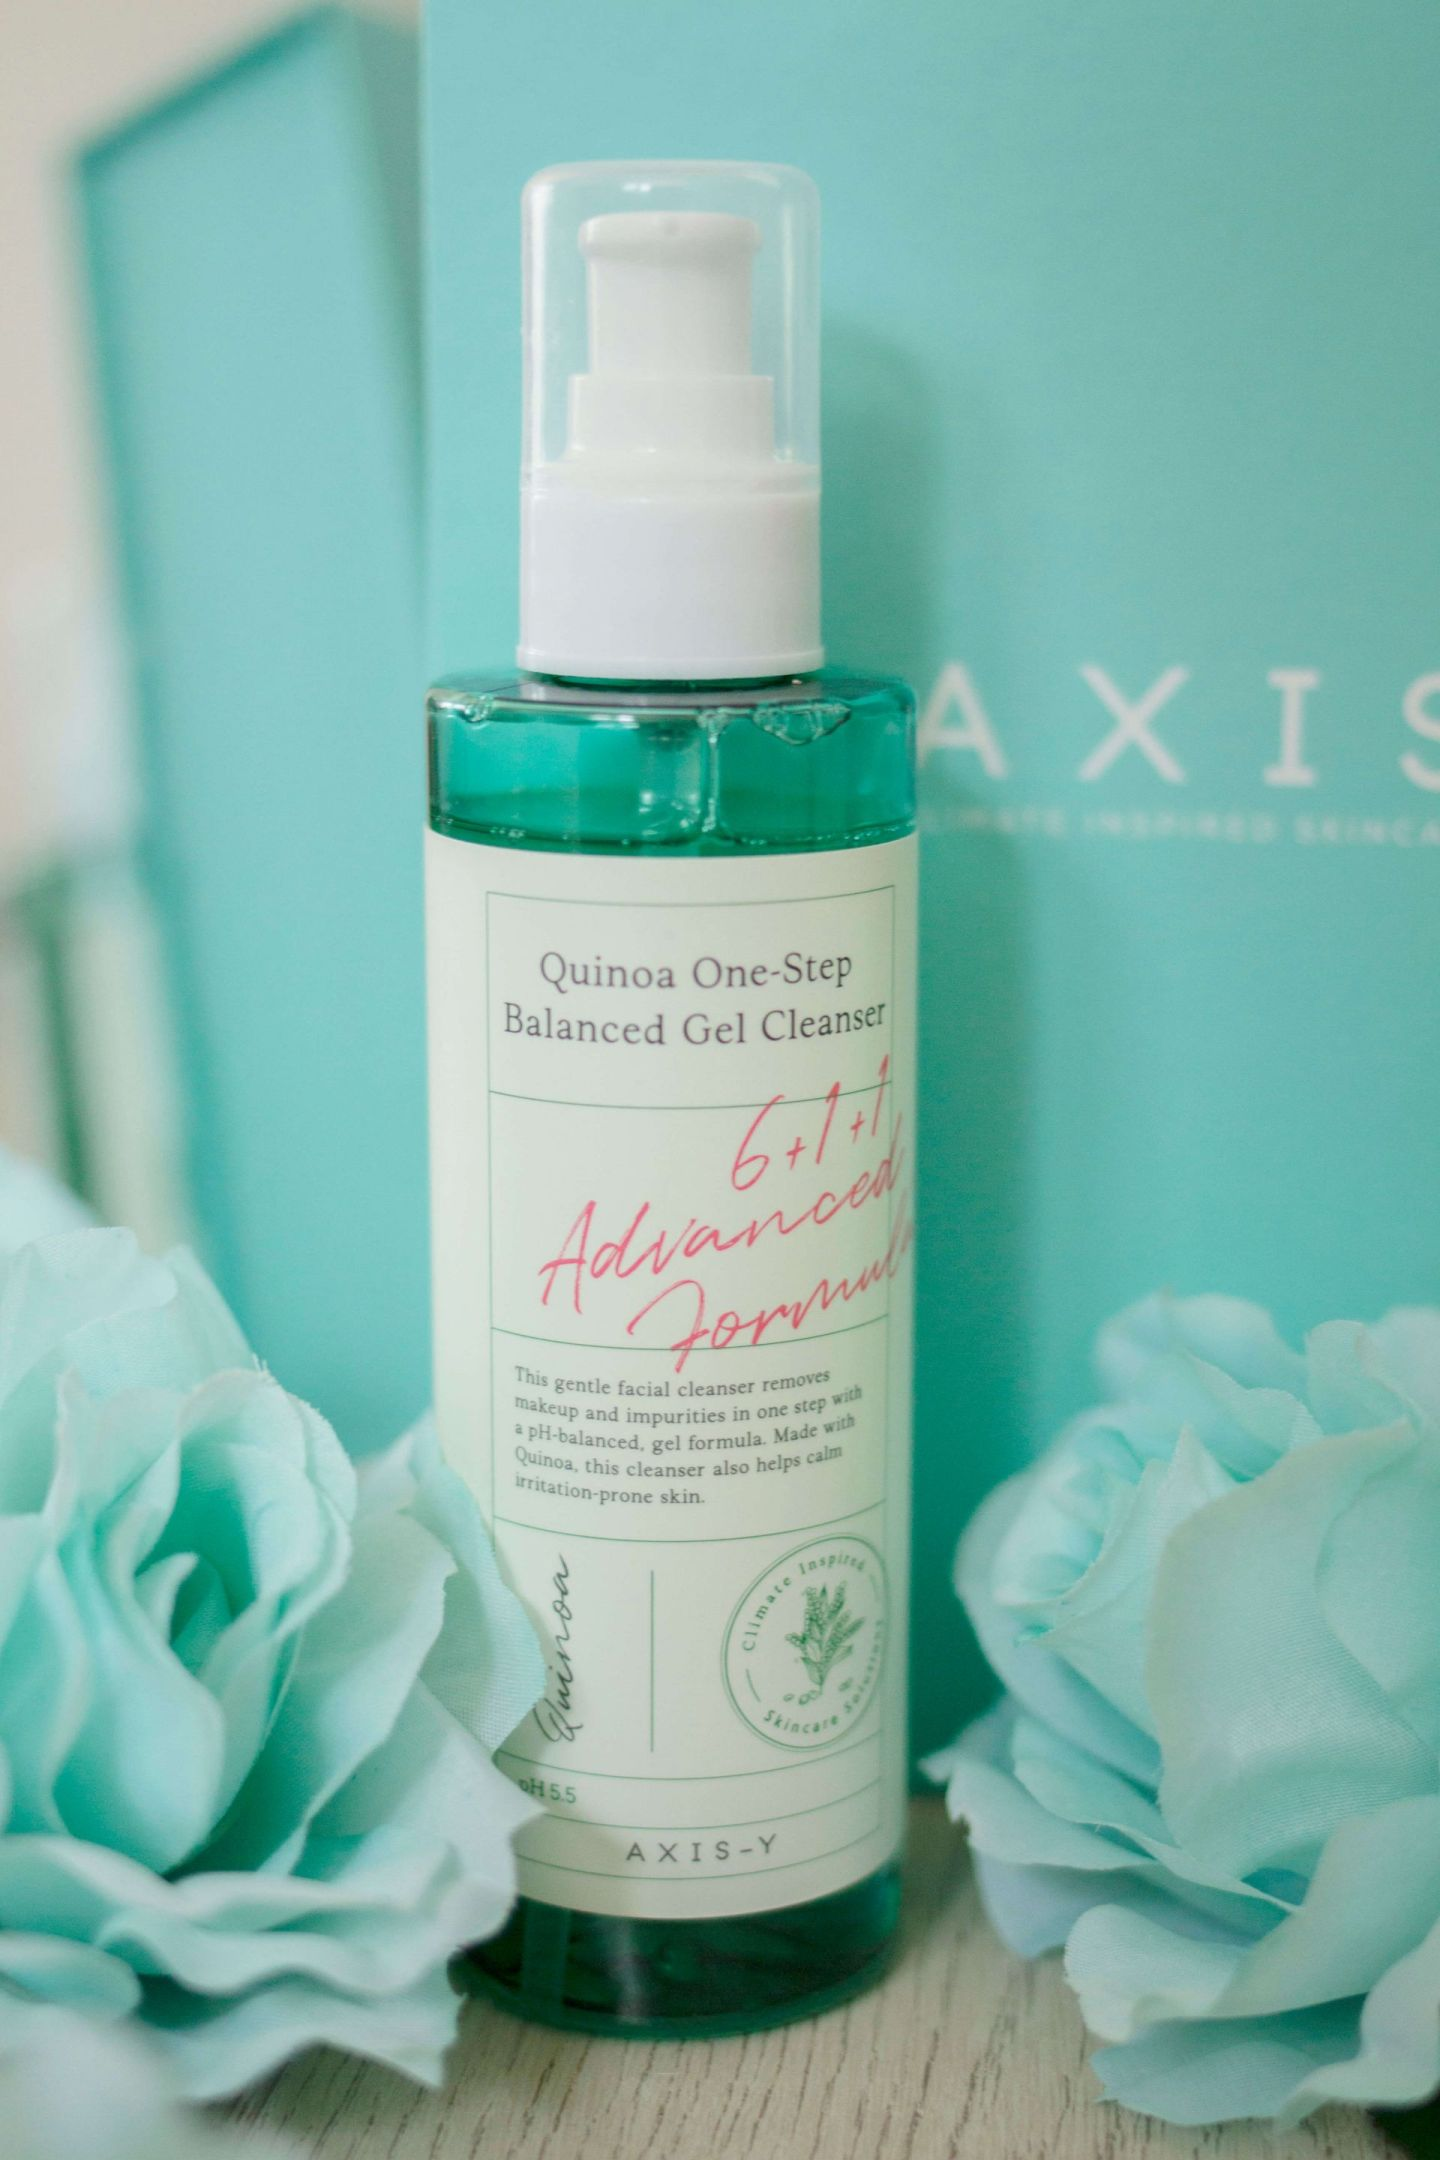 axis-y quinoa one-step balanced gel cleanser review